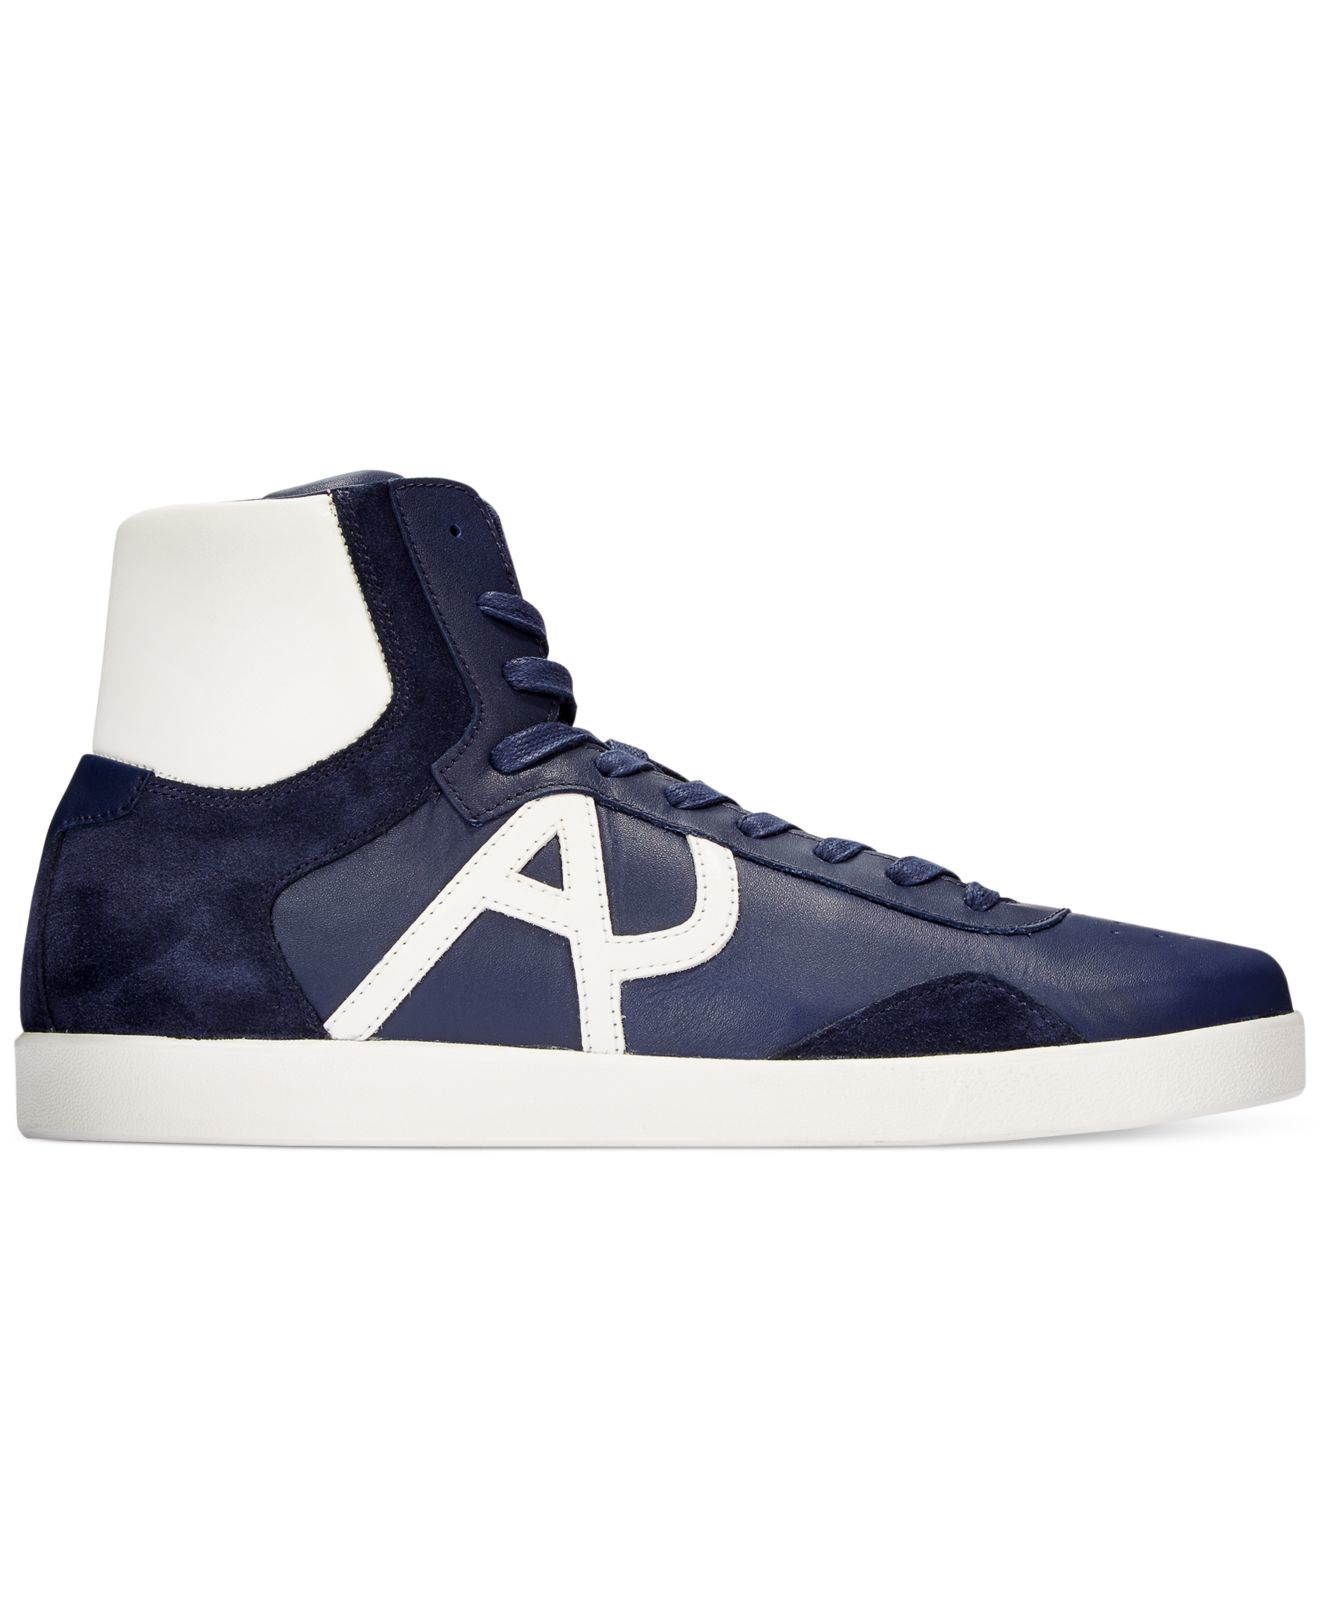 Lyst - Armani Jeans Logo Hi-top Sneakers in Blue for Men